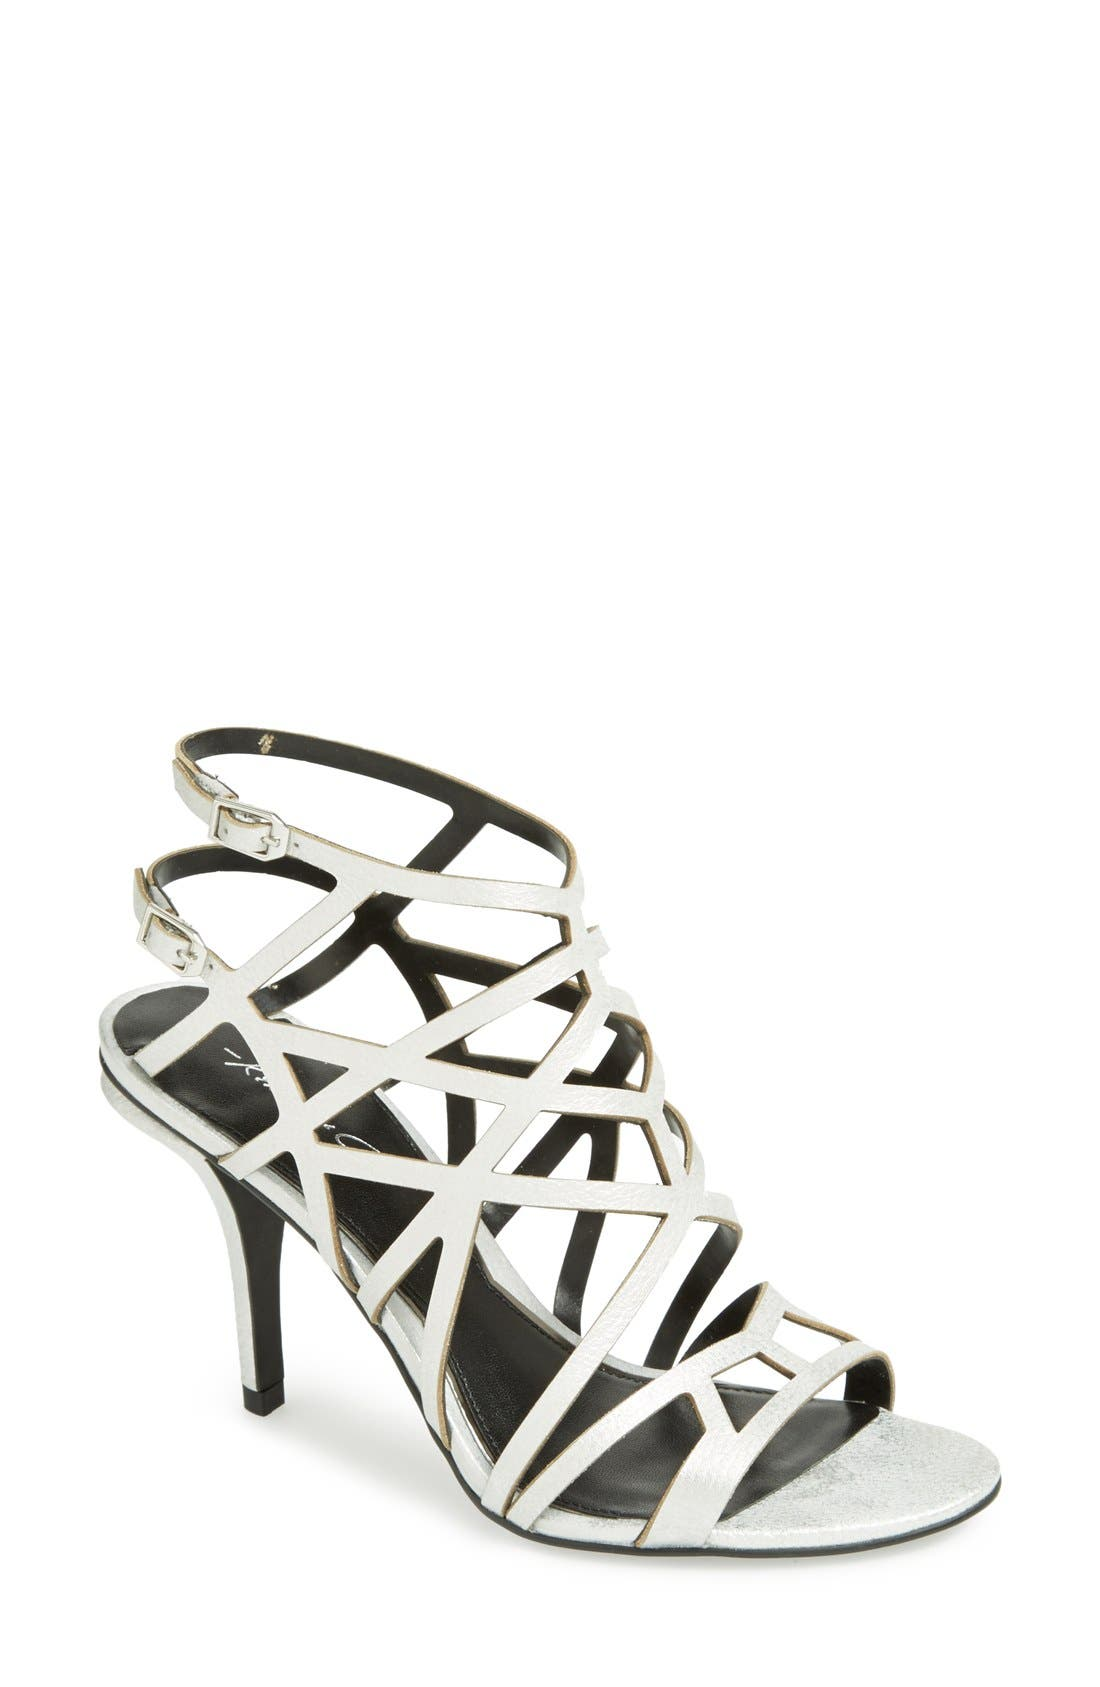 Main Image - Kenneth Cole New York Cage Sandal